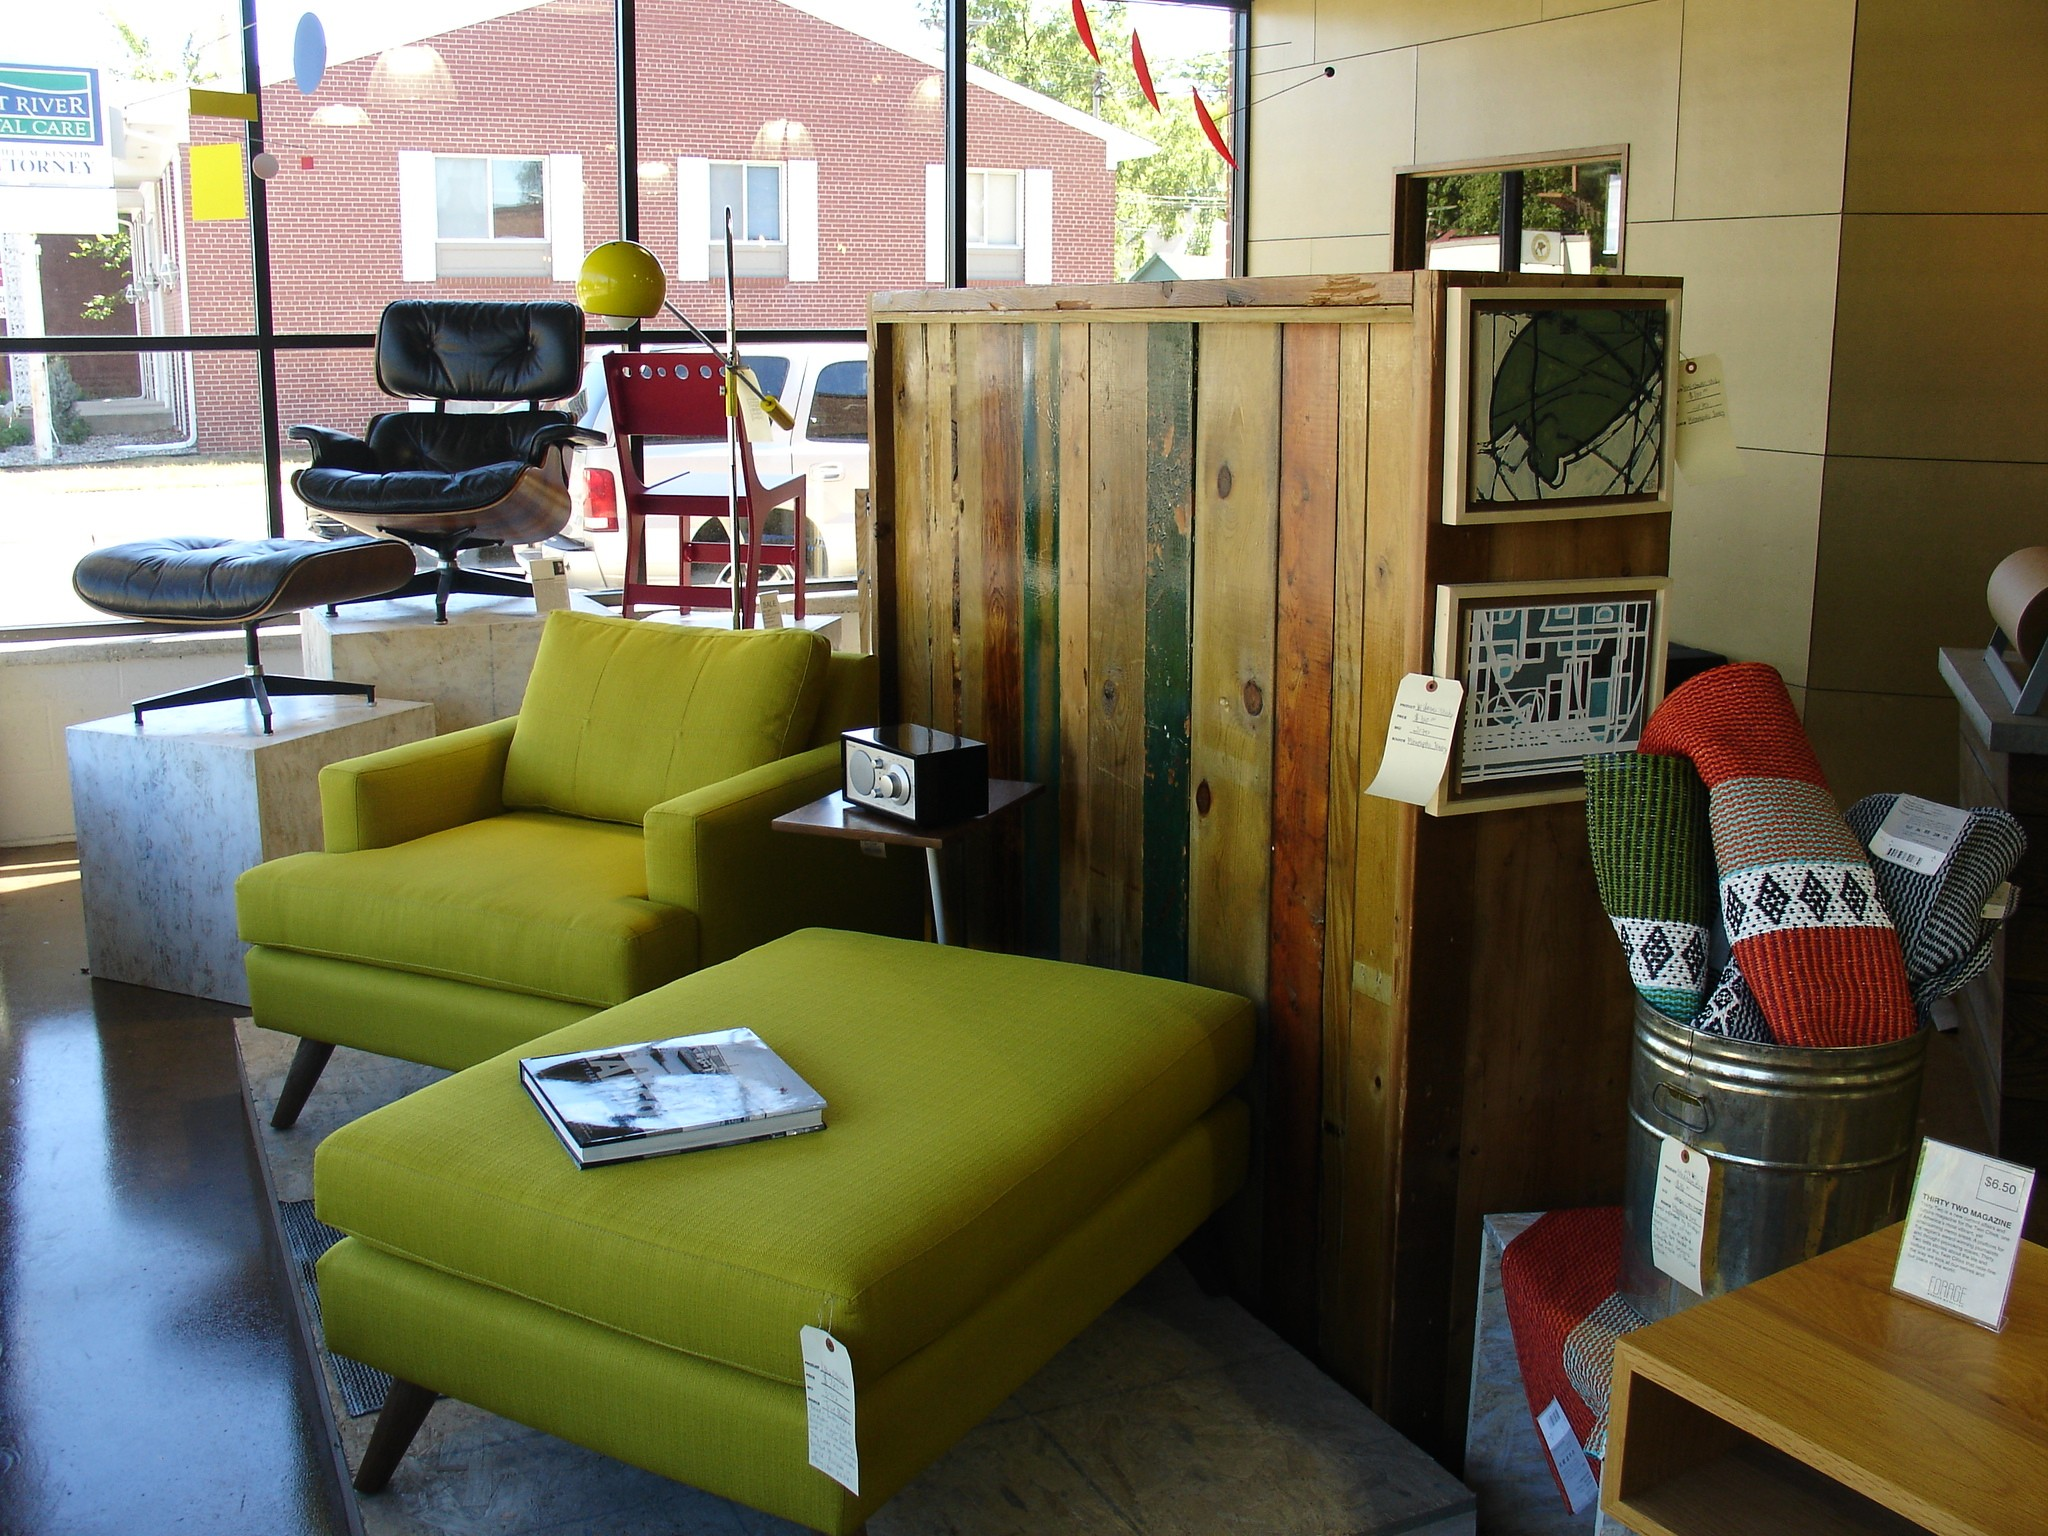 Modern Furniture Workshop store photo tour: forage modern workshop | twin cities design scene